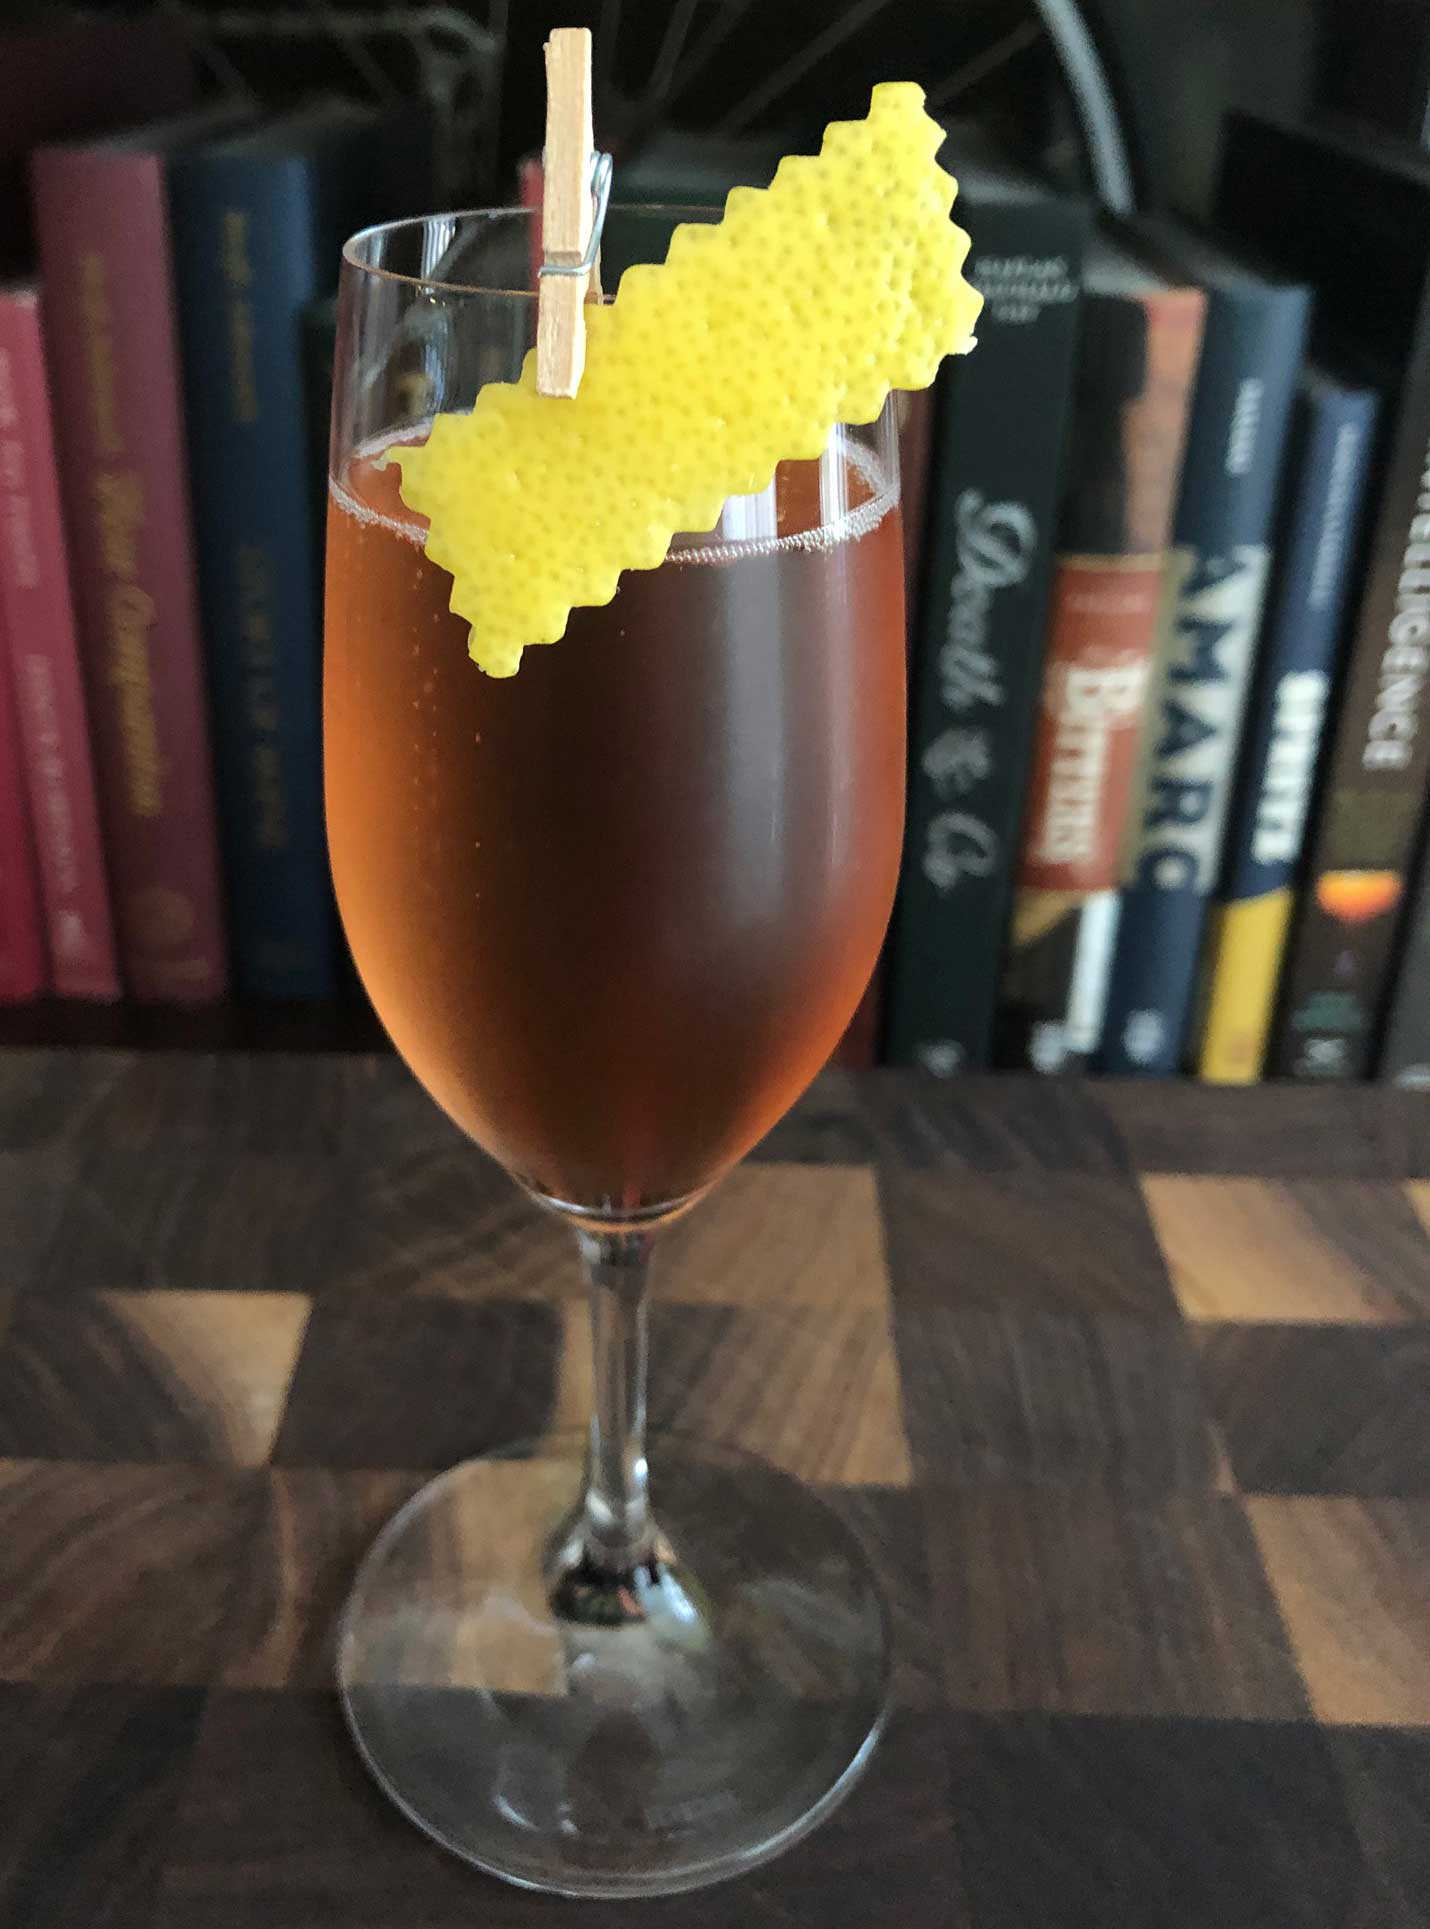 An example of the Inspector Clouseau, the mixed drink (cocktail) featuring sparkling wine, Dolin Blanc Vermouth de Chambéry, and Rothman & Winter Orchard Cherry Liqueur; photo by Lee Edwards